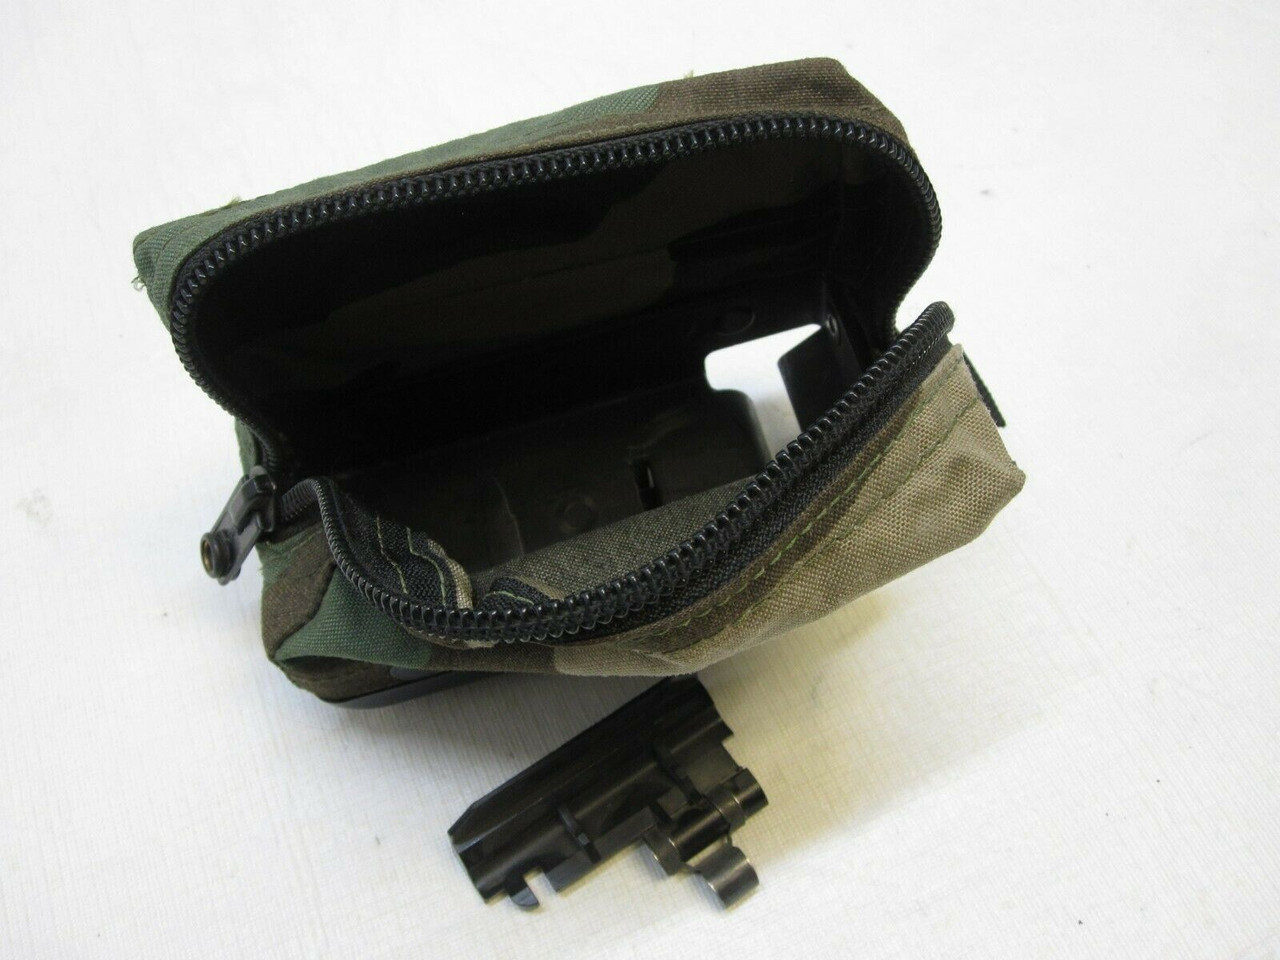 WOODLAND BDU M249 AMMO POUCH 100 ROUND SOFT PACK NUT SACK SAW START TAB 5.56